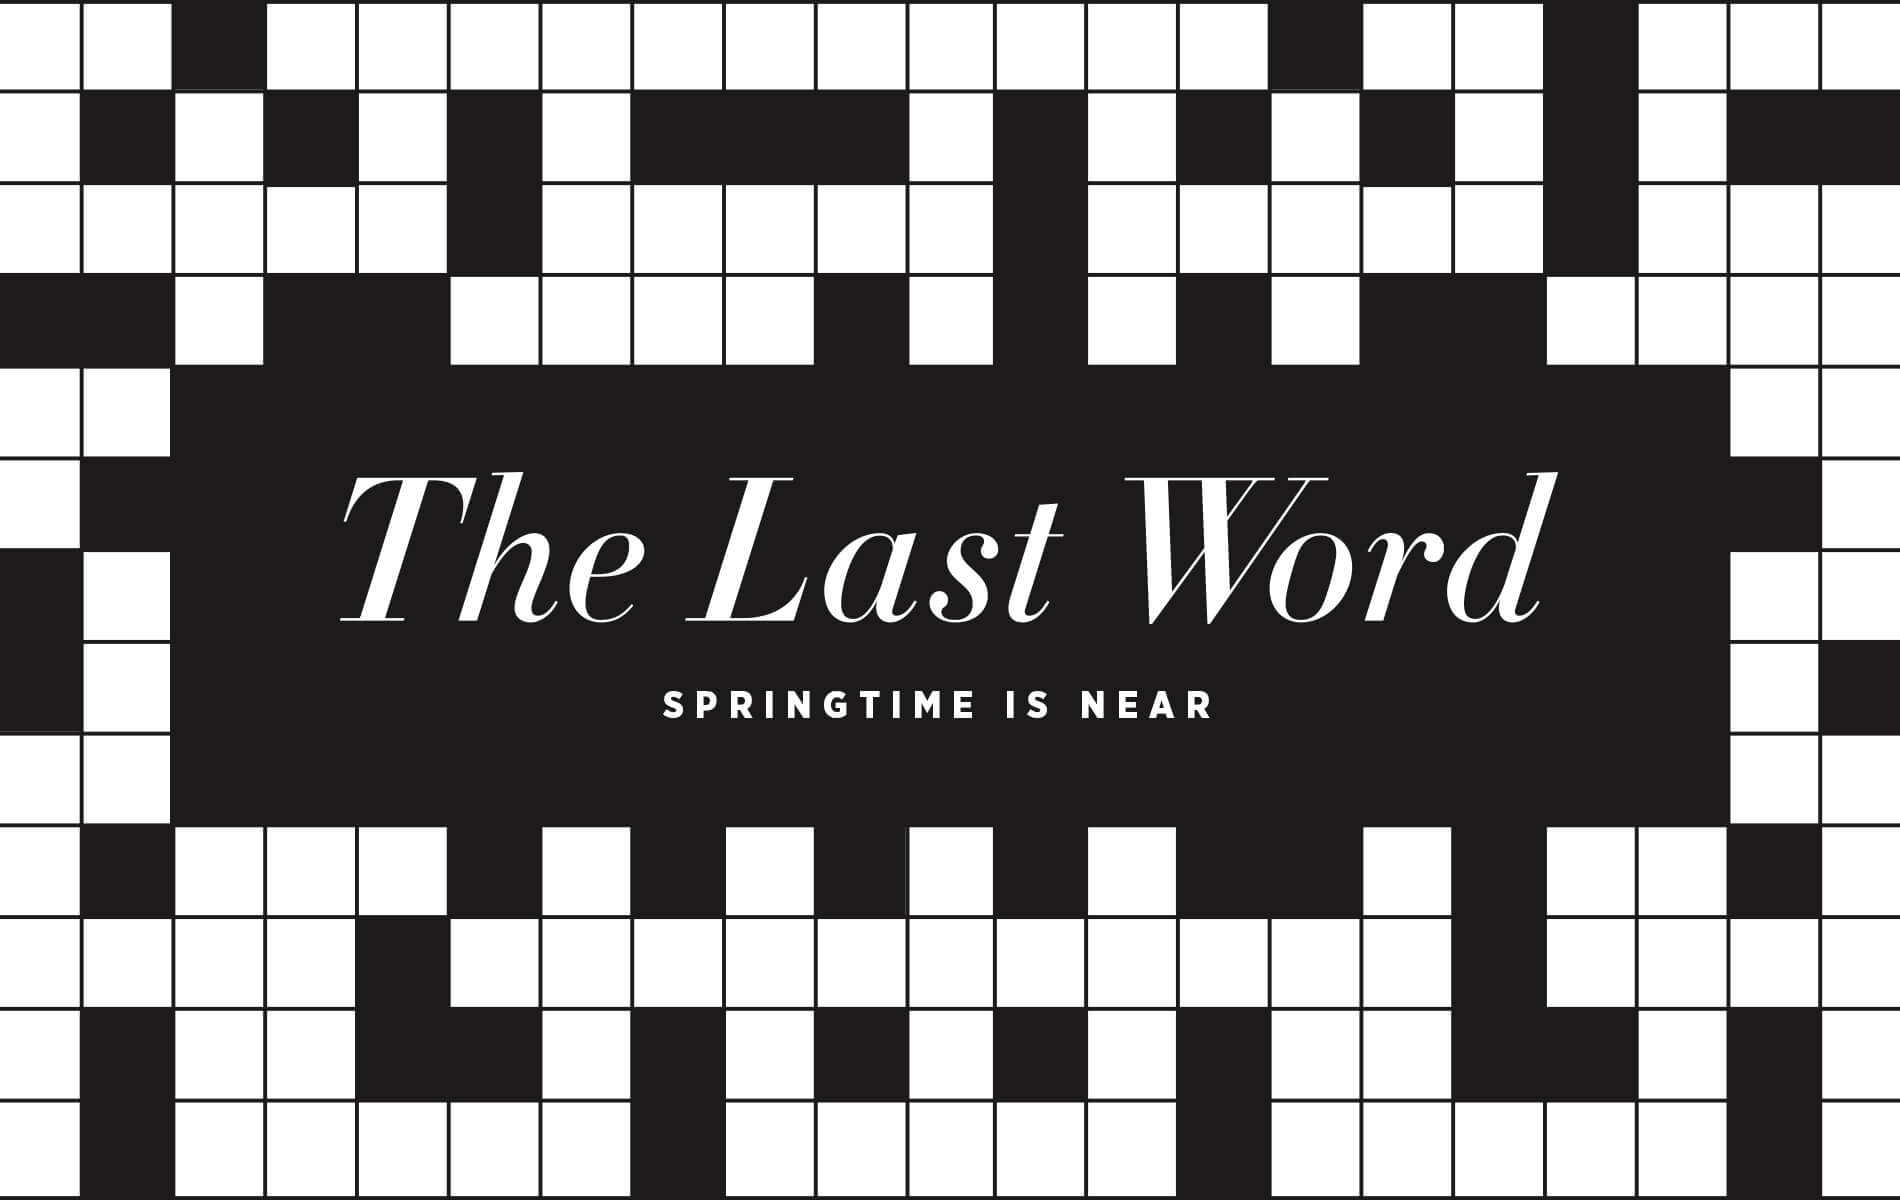 VIE Magazine The Last Word Springtime is Near, Crossword Puzzle